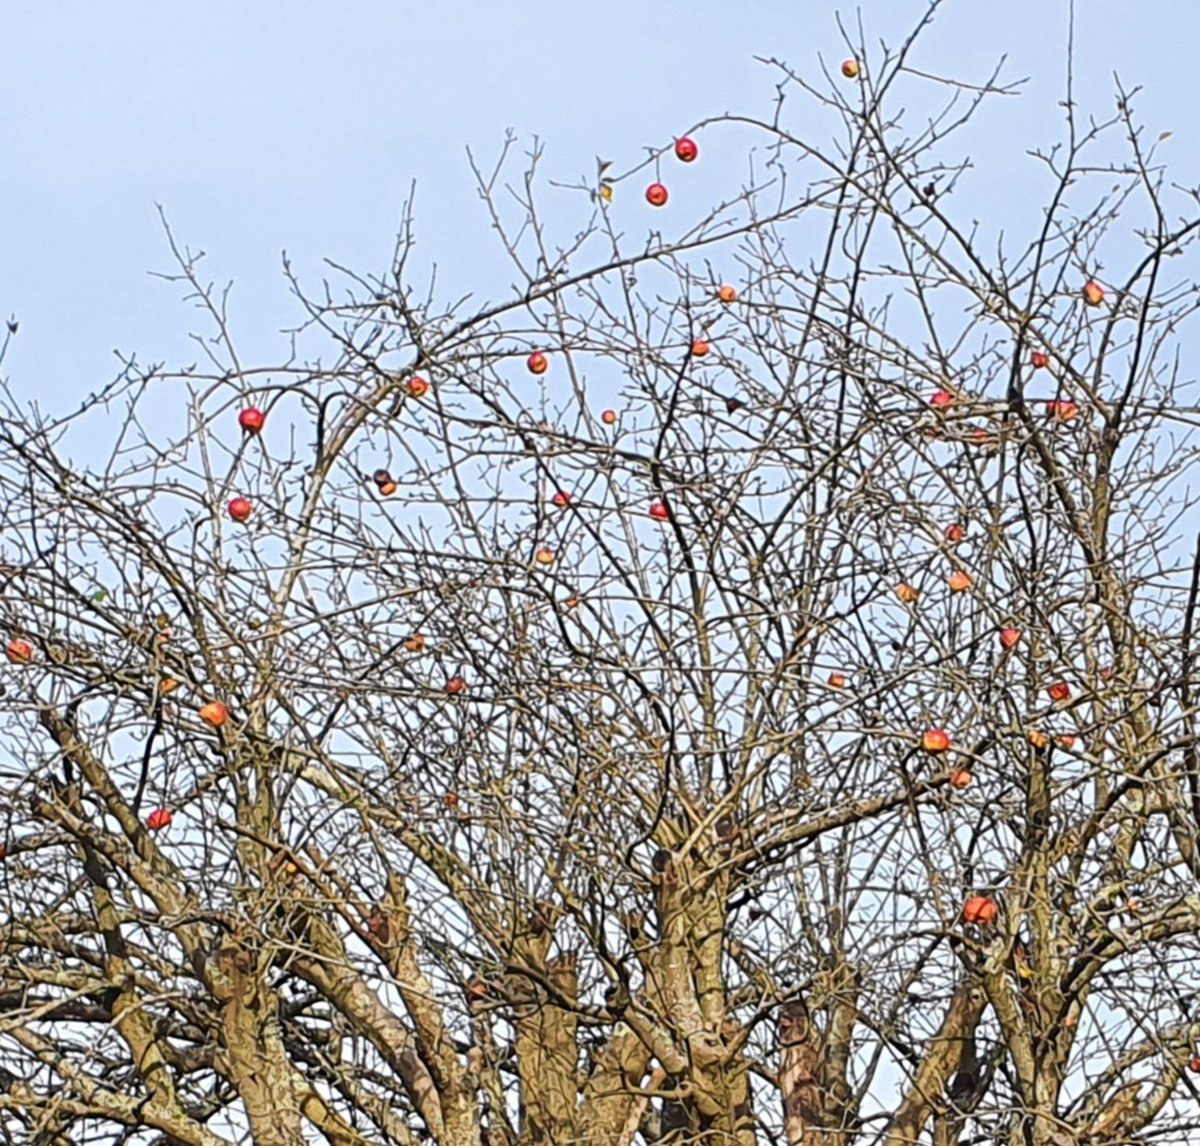 Natures Christmas decorations on this apple tree, seen out walking yesterday. Sunlight made the red really shine.  #Kent #Walk https://t.co/mAid5hzMAT